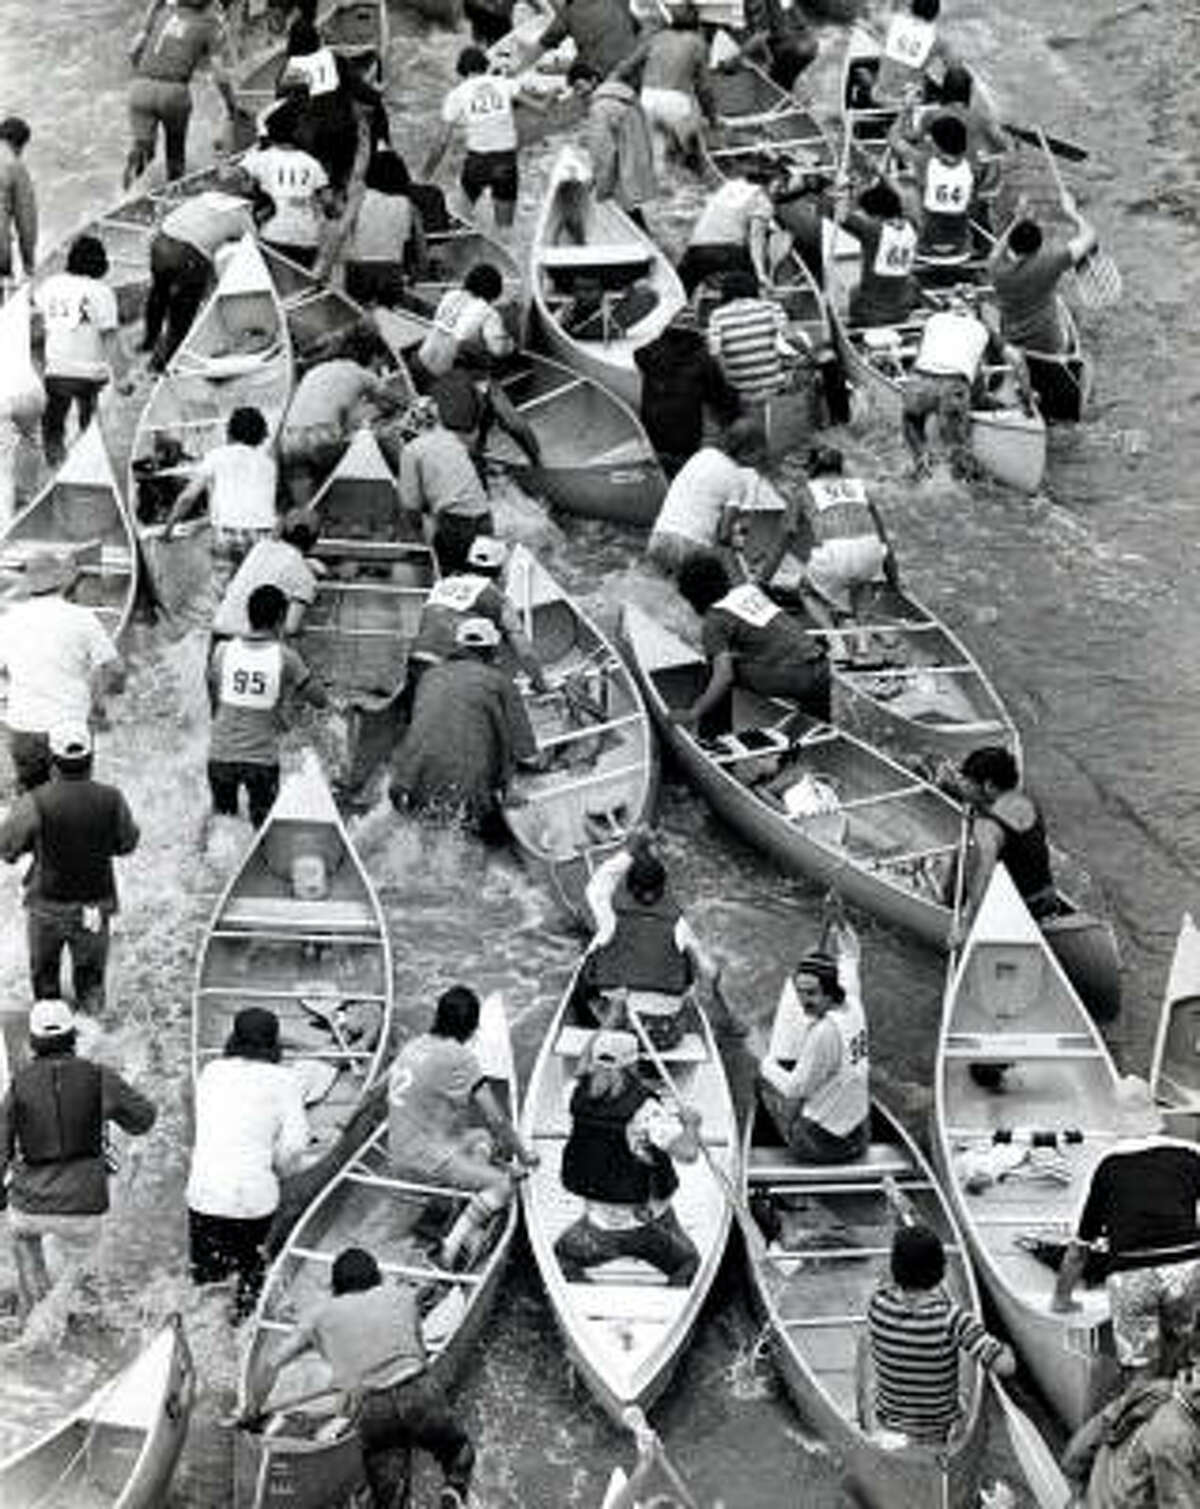 The Reeking Regatta canoe race gets under way at San Felipe bridge and Buffalo Bayou in 1977.